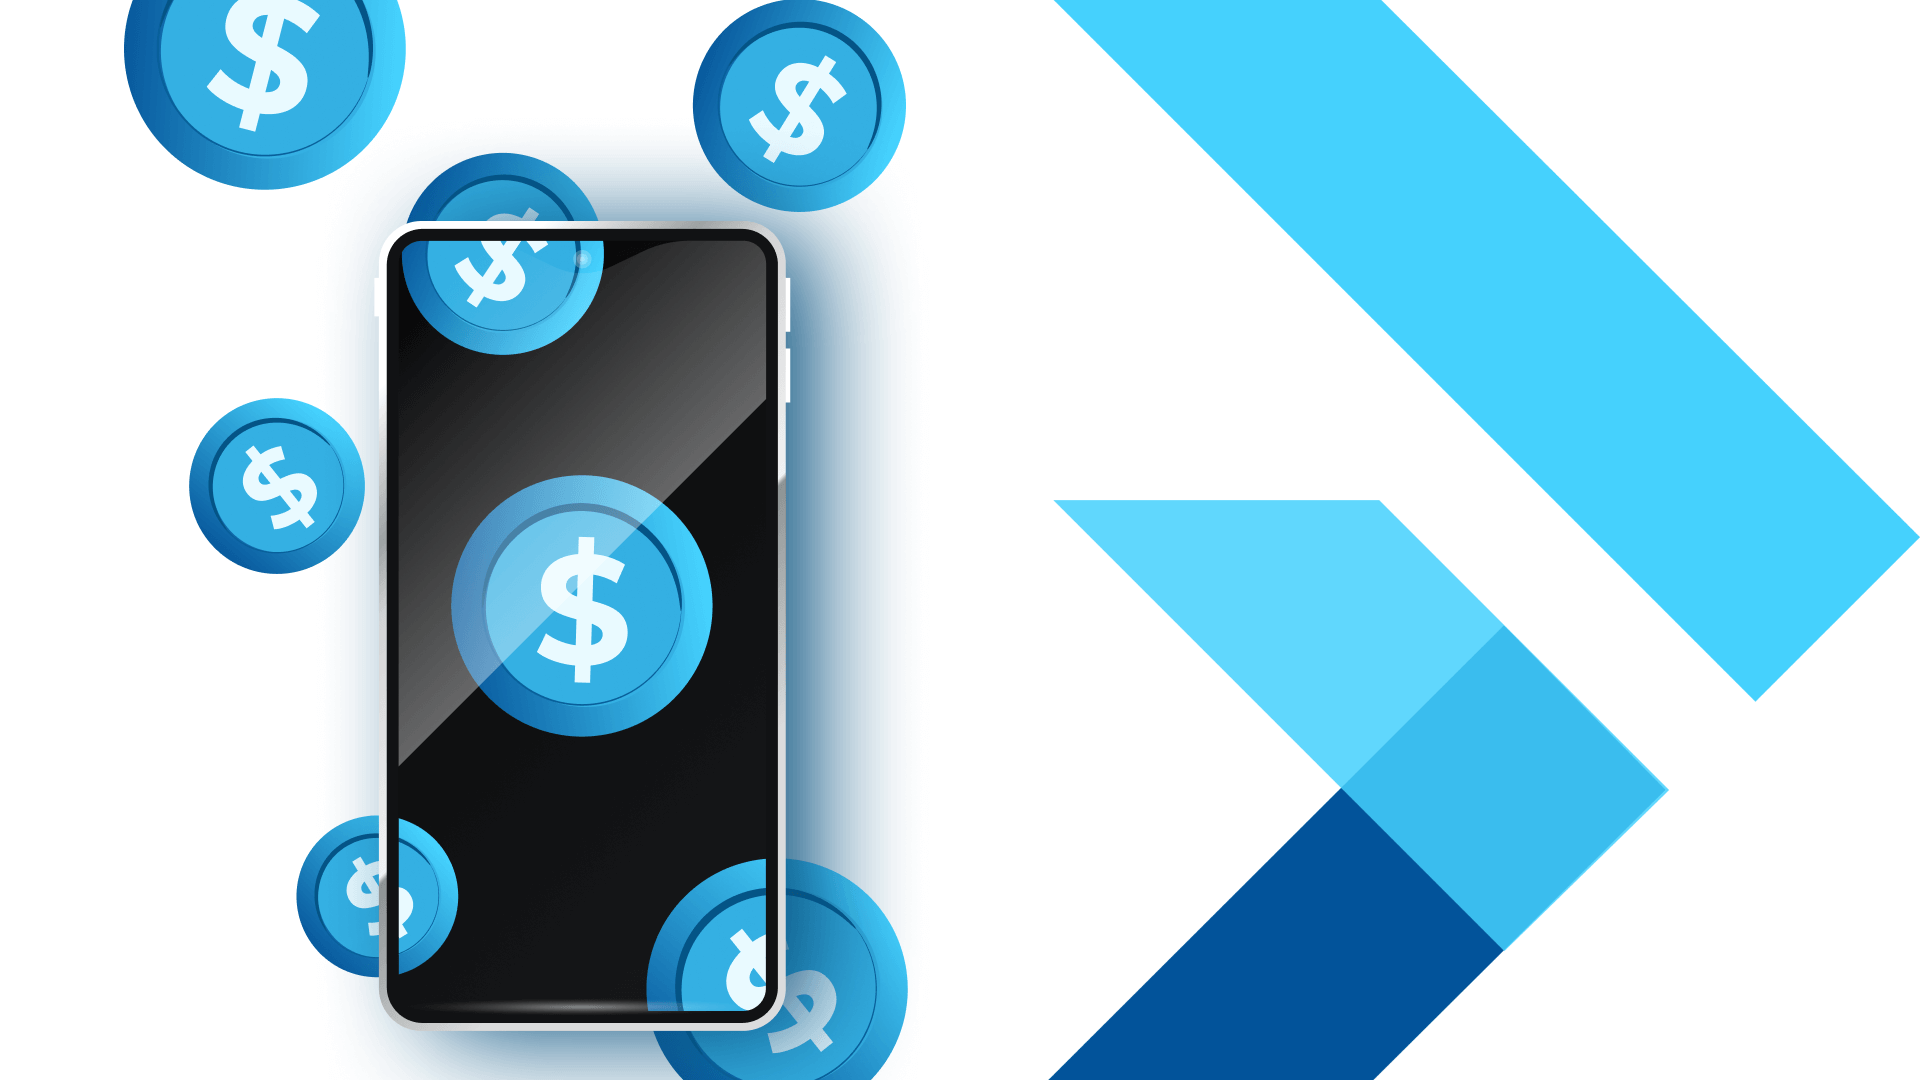 How much should you pay for a Flutter-build project in 2021?